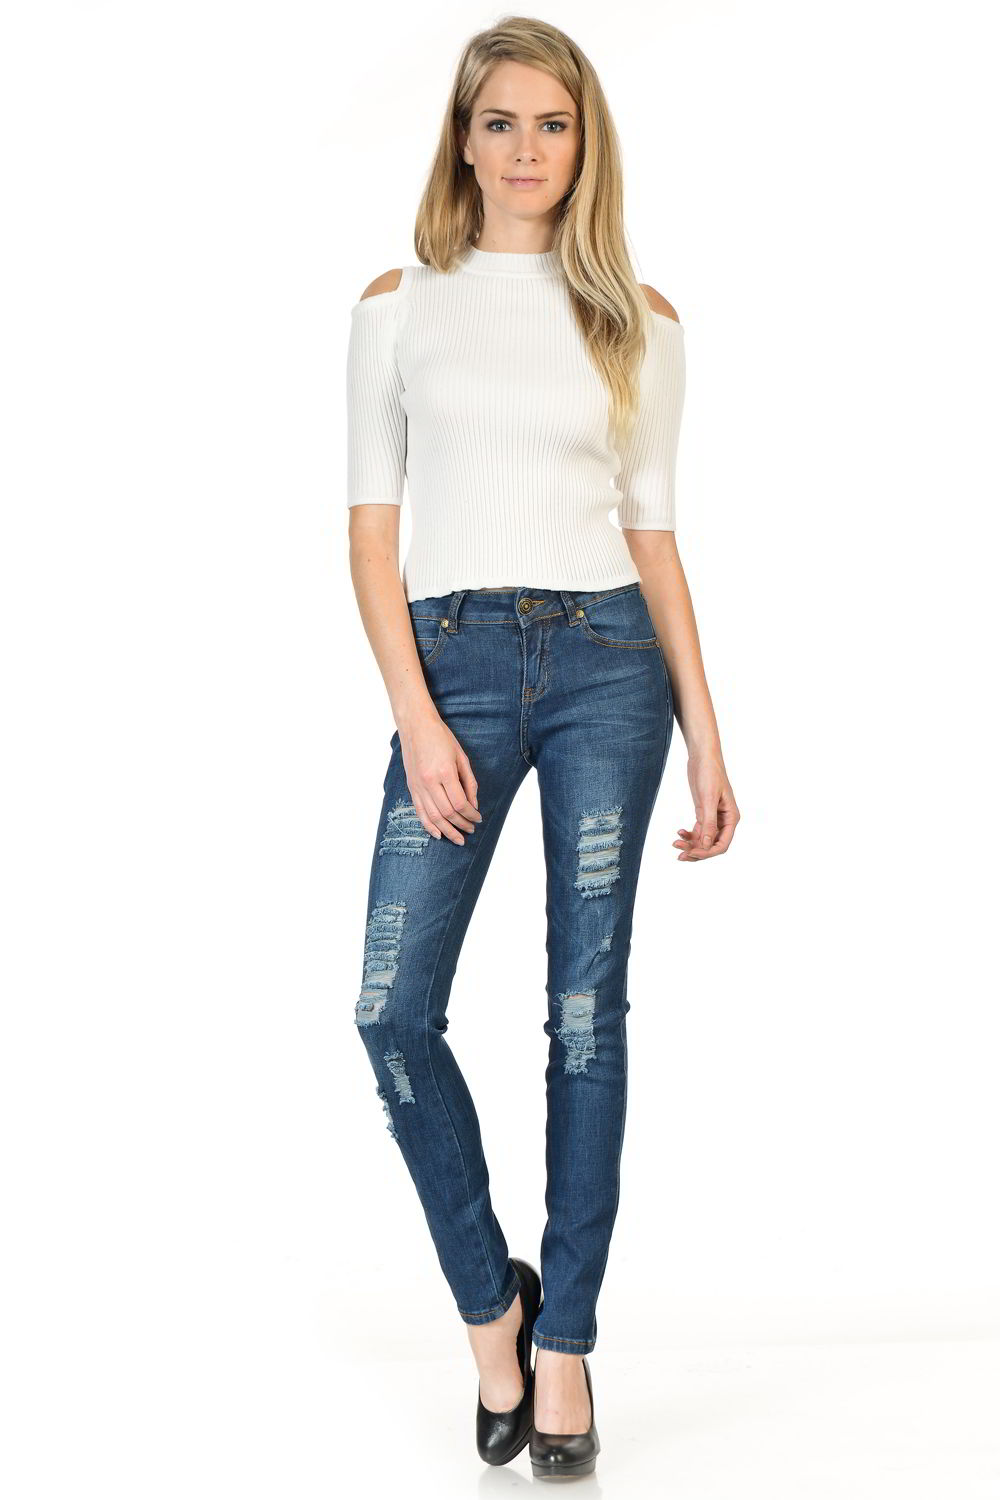 Sweet Look Premium Edition Women's Jeans - Push Up - Style WY5028D-R